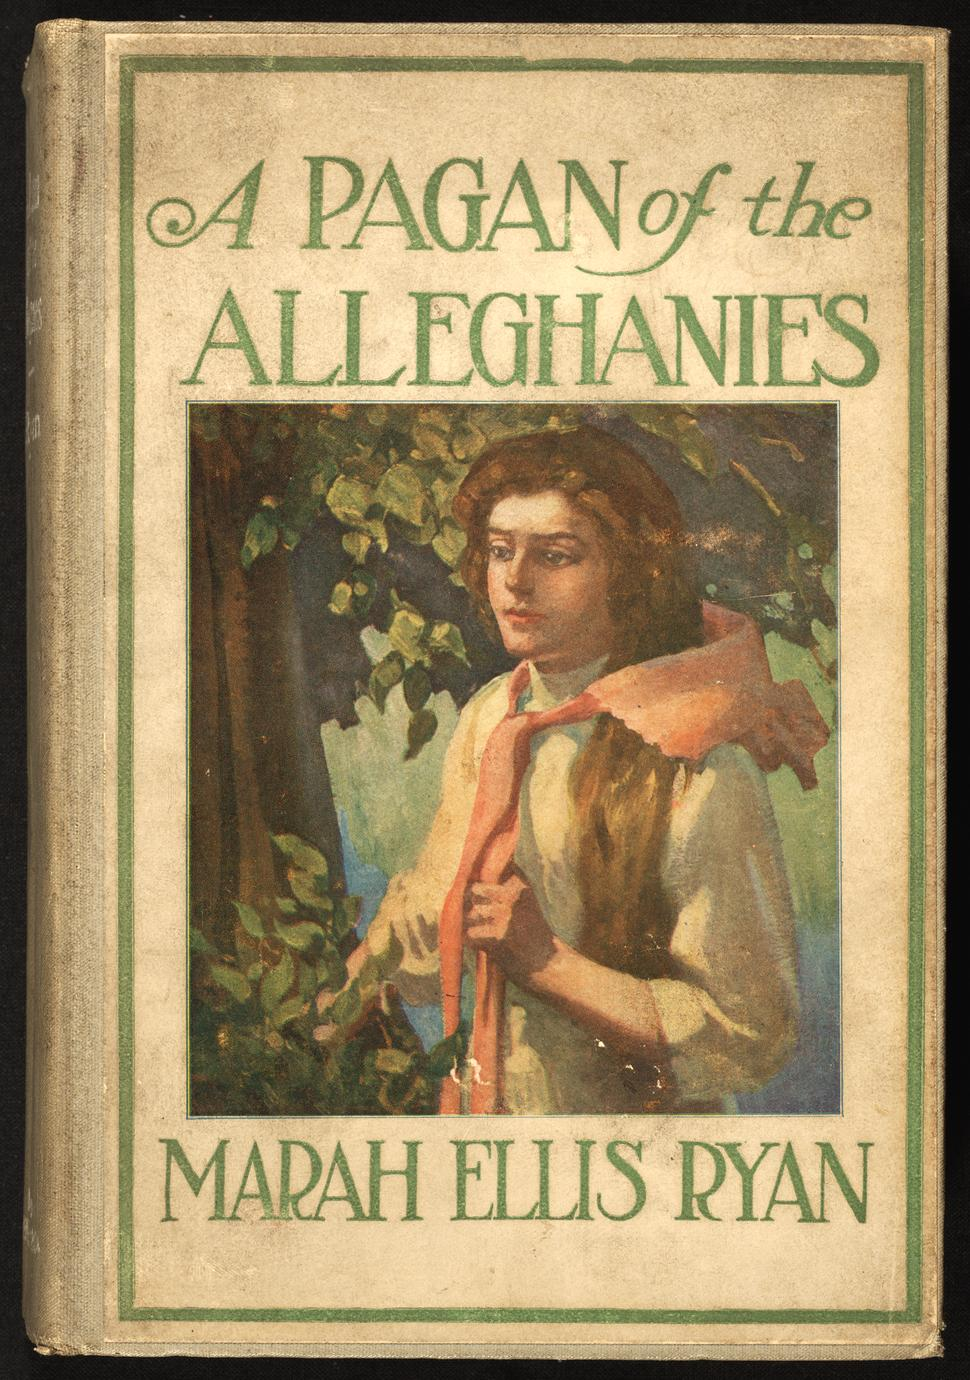 Pagan of the Alleghanies (1 of 2)